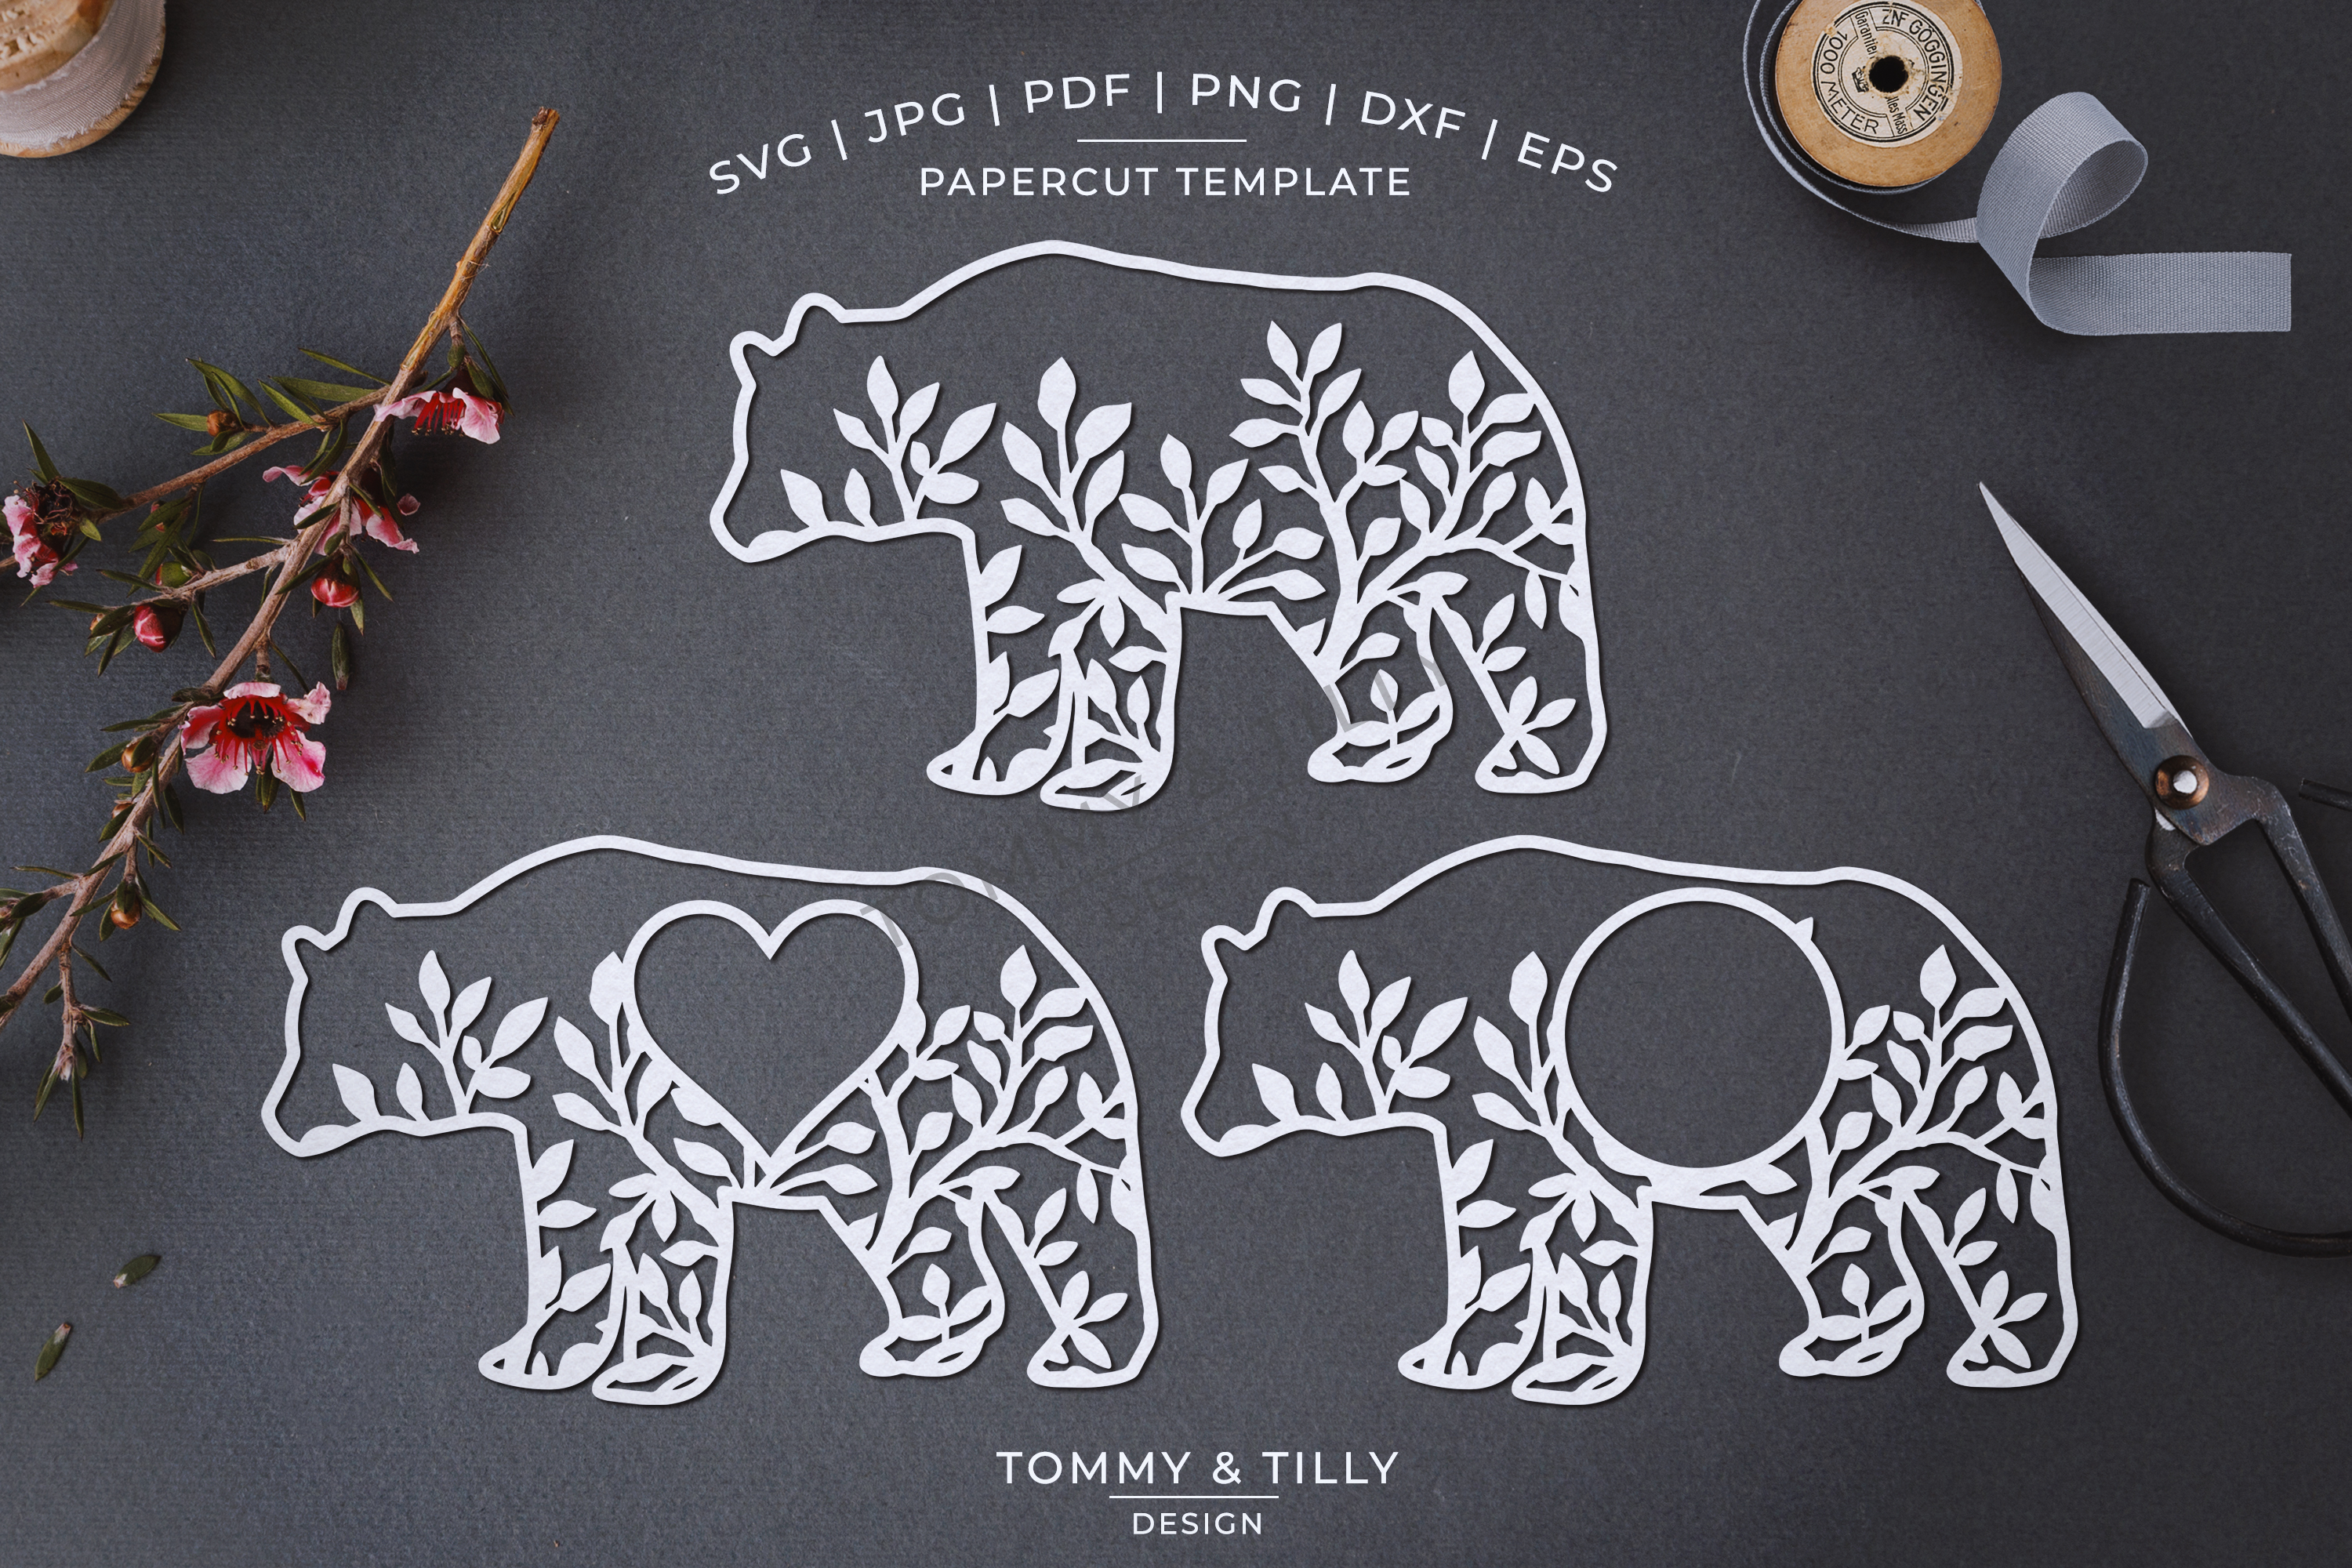 Foliage Bear x 3 - Papercut Template SVG EPS DXF PNG PDF example image 2